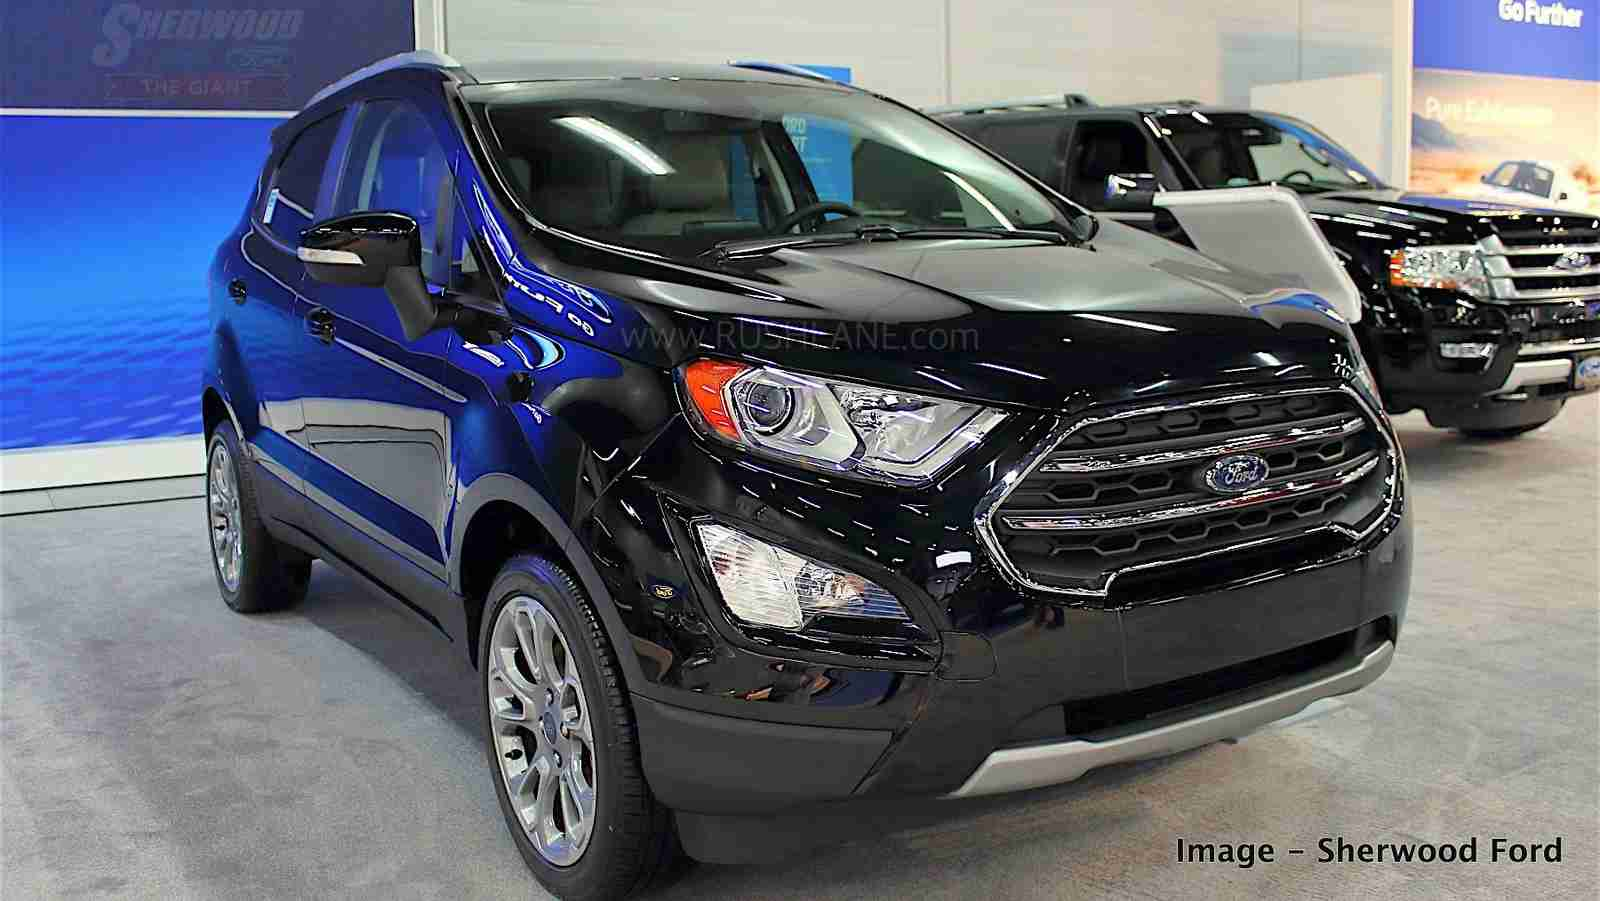 Ford EcoSport exported from India